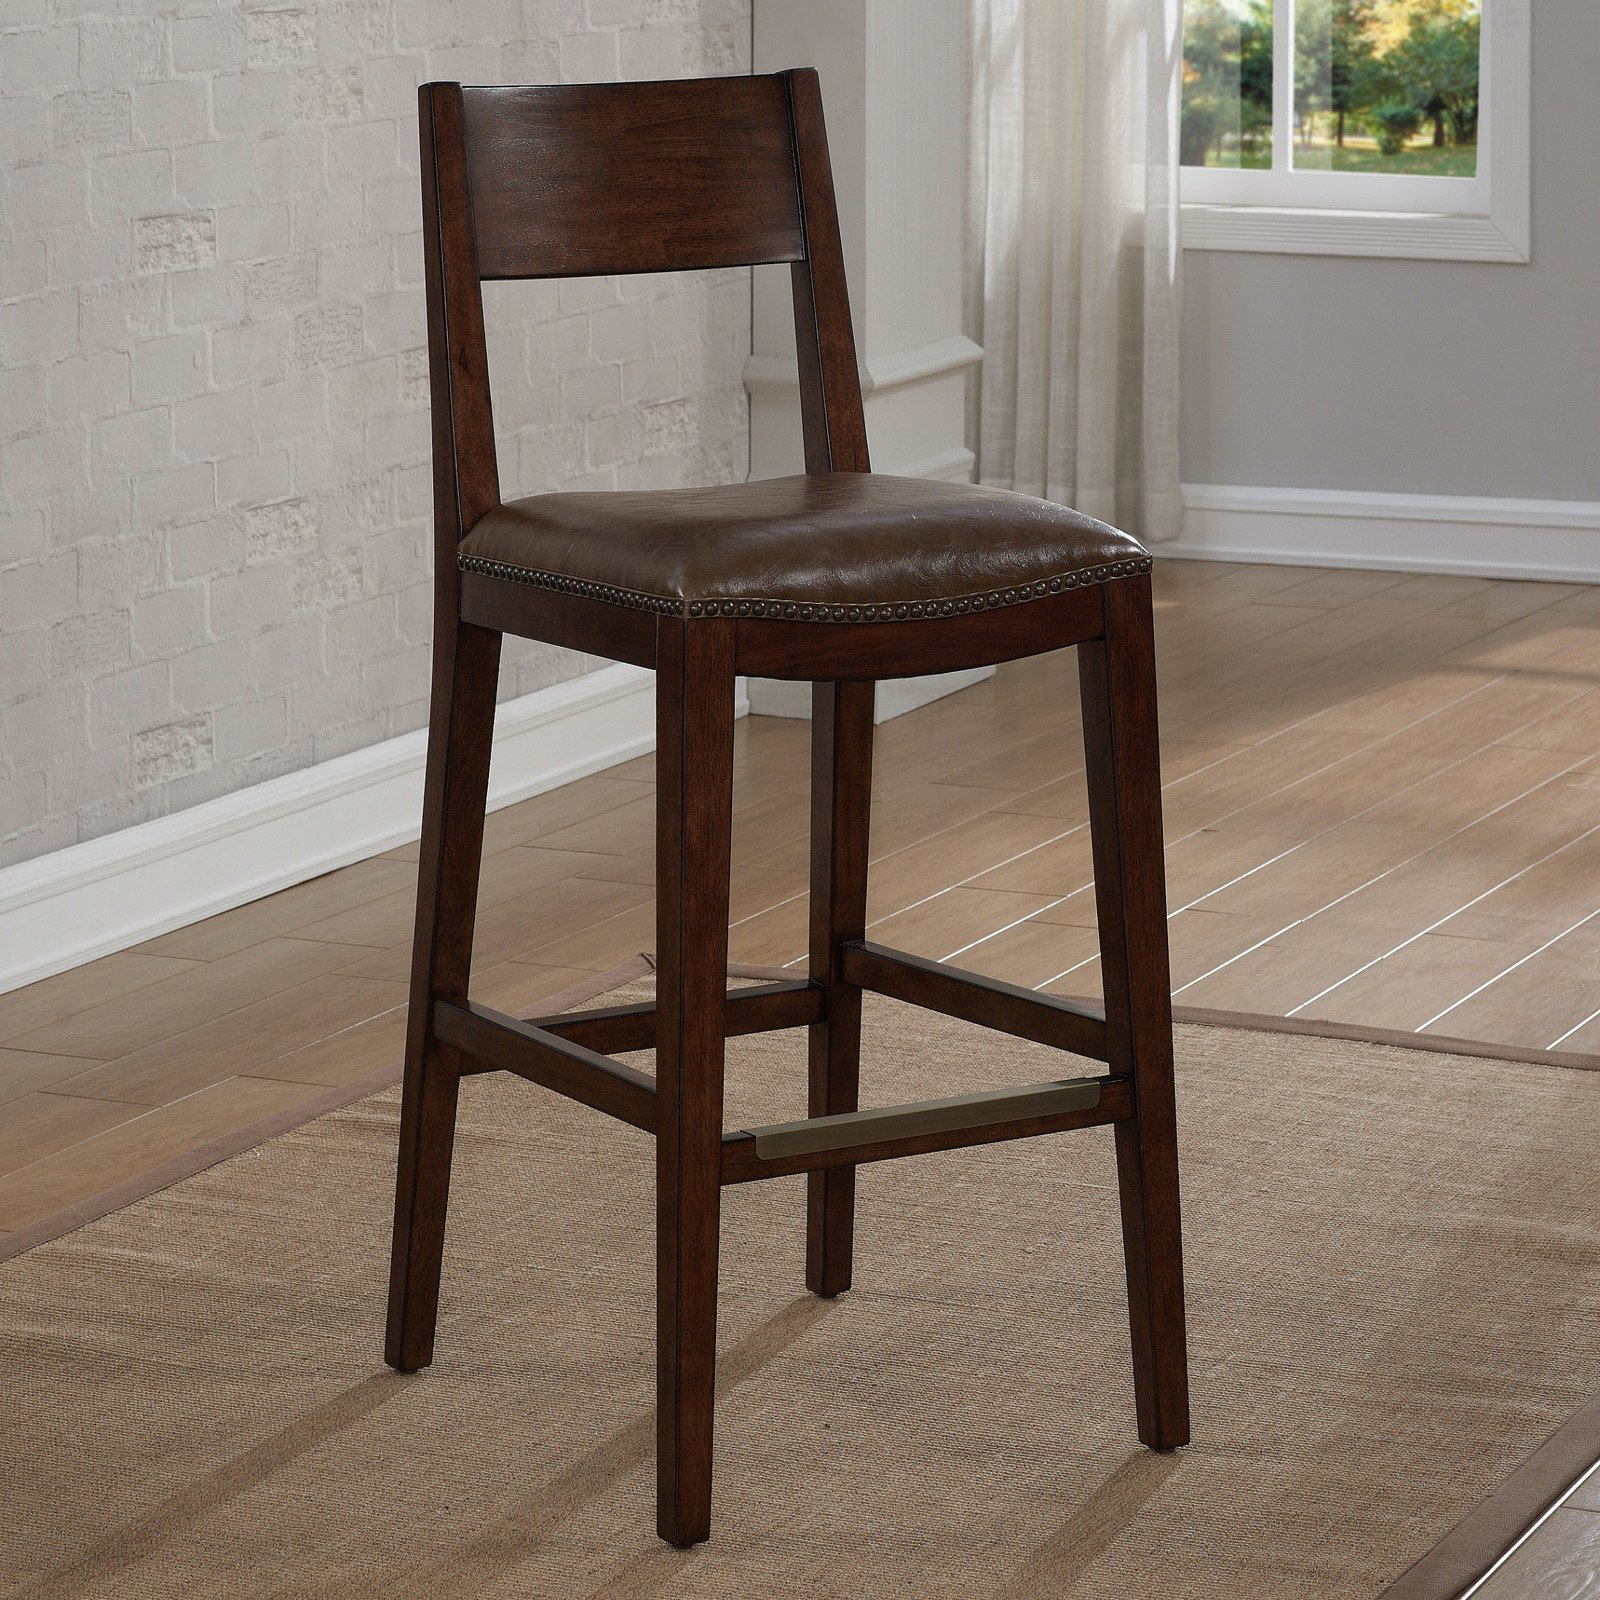 American Heritage Ralston Counter Height Stool by American Heritage Billiards